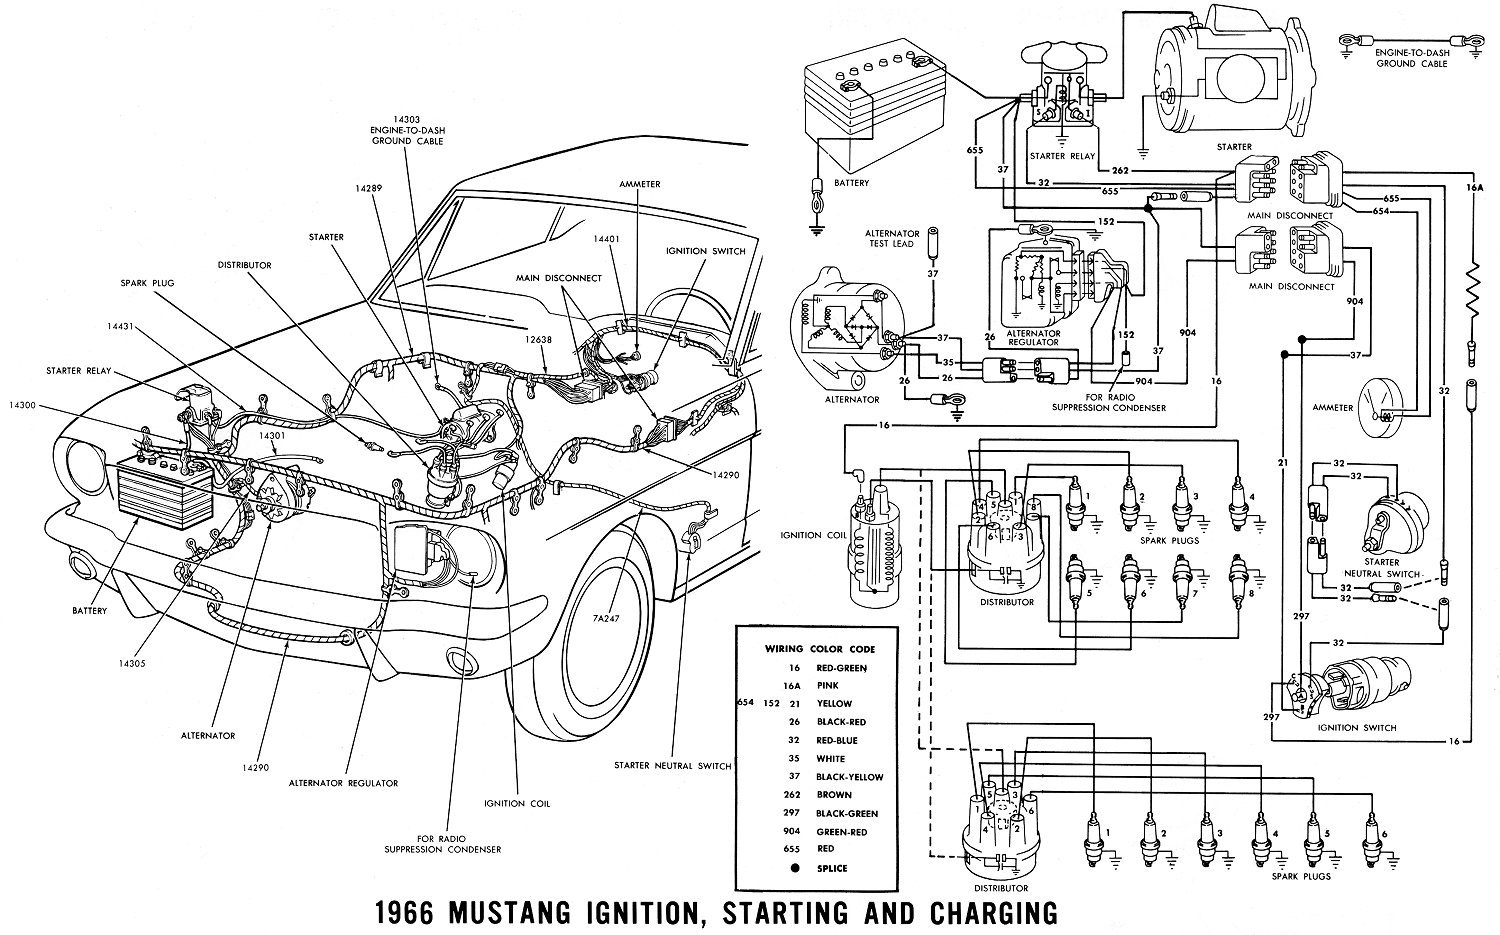 John Deere Alternator Wiring Diagram Free Download